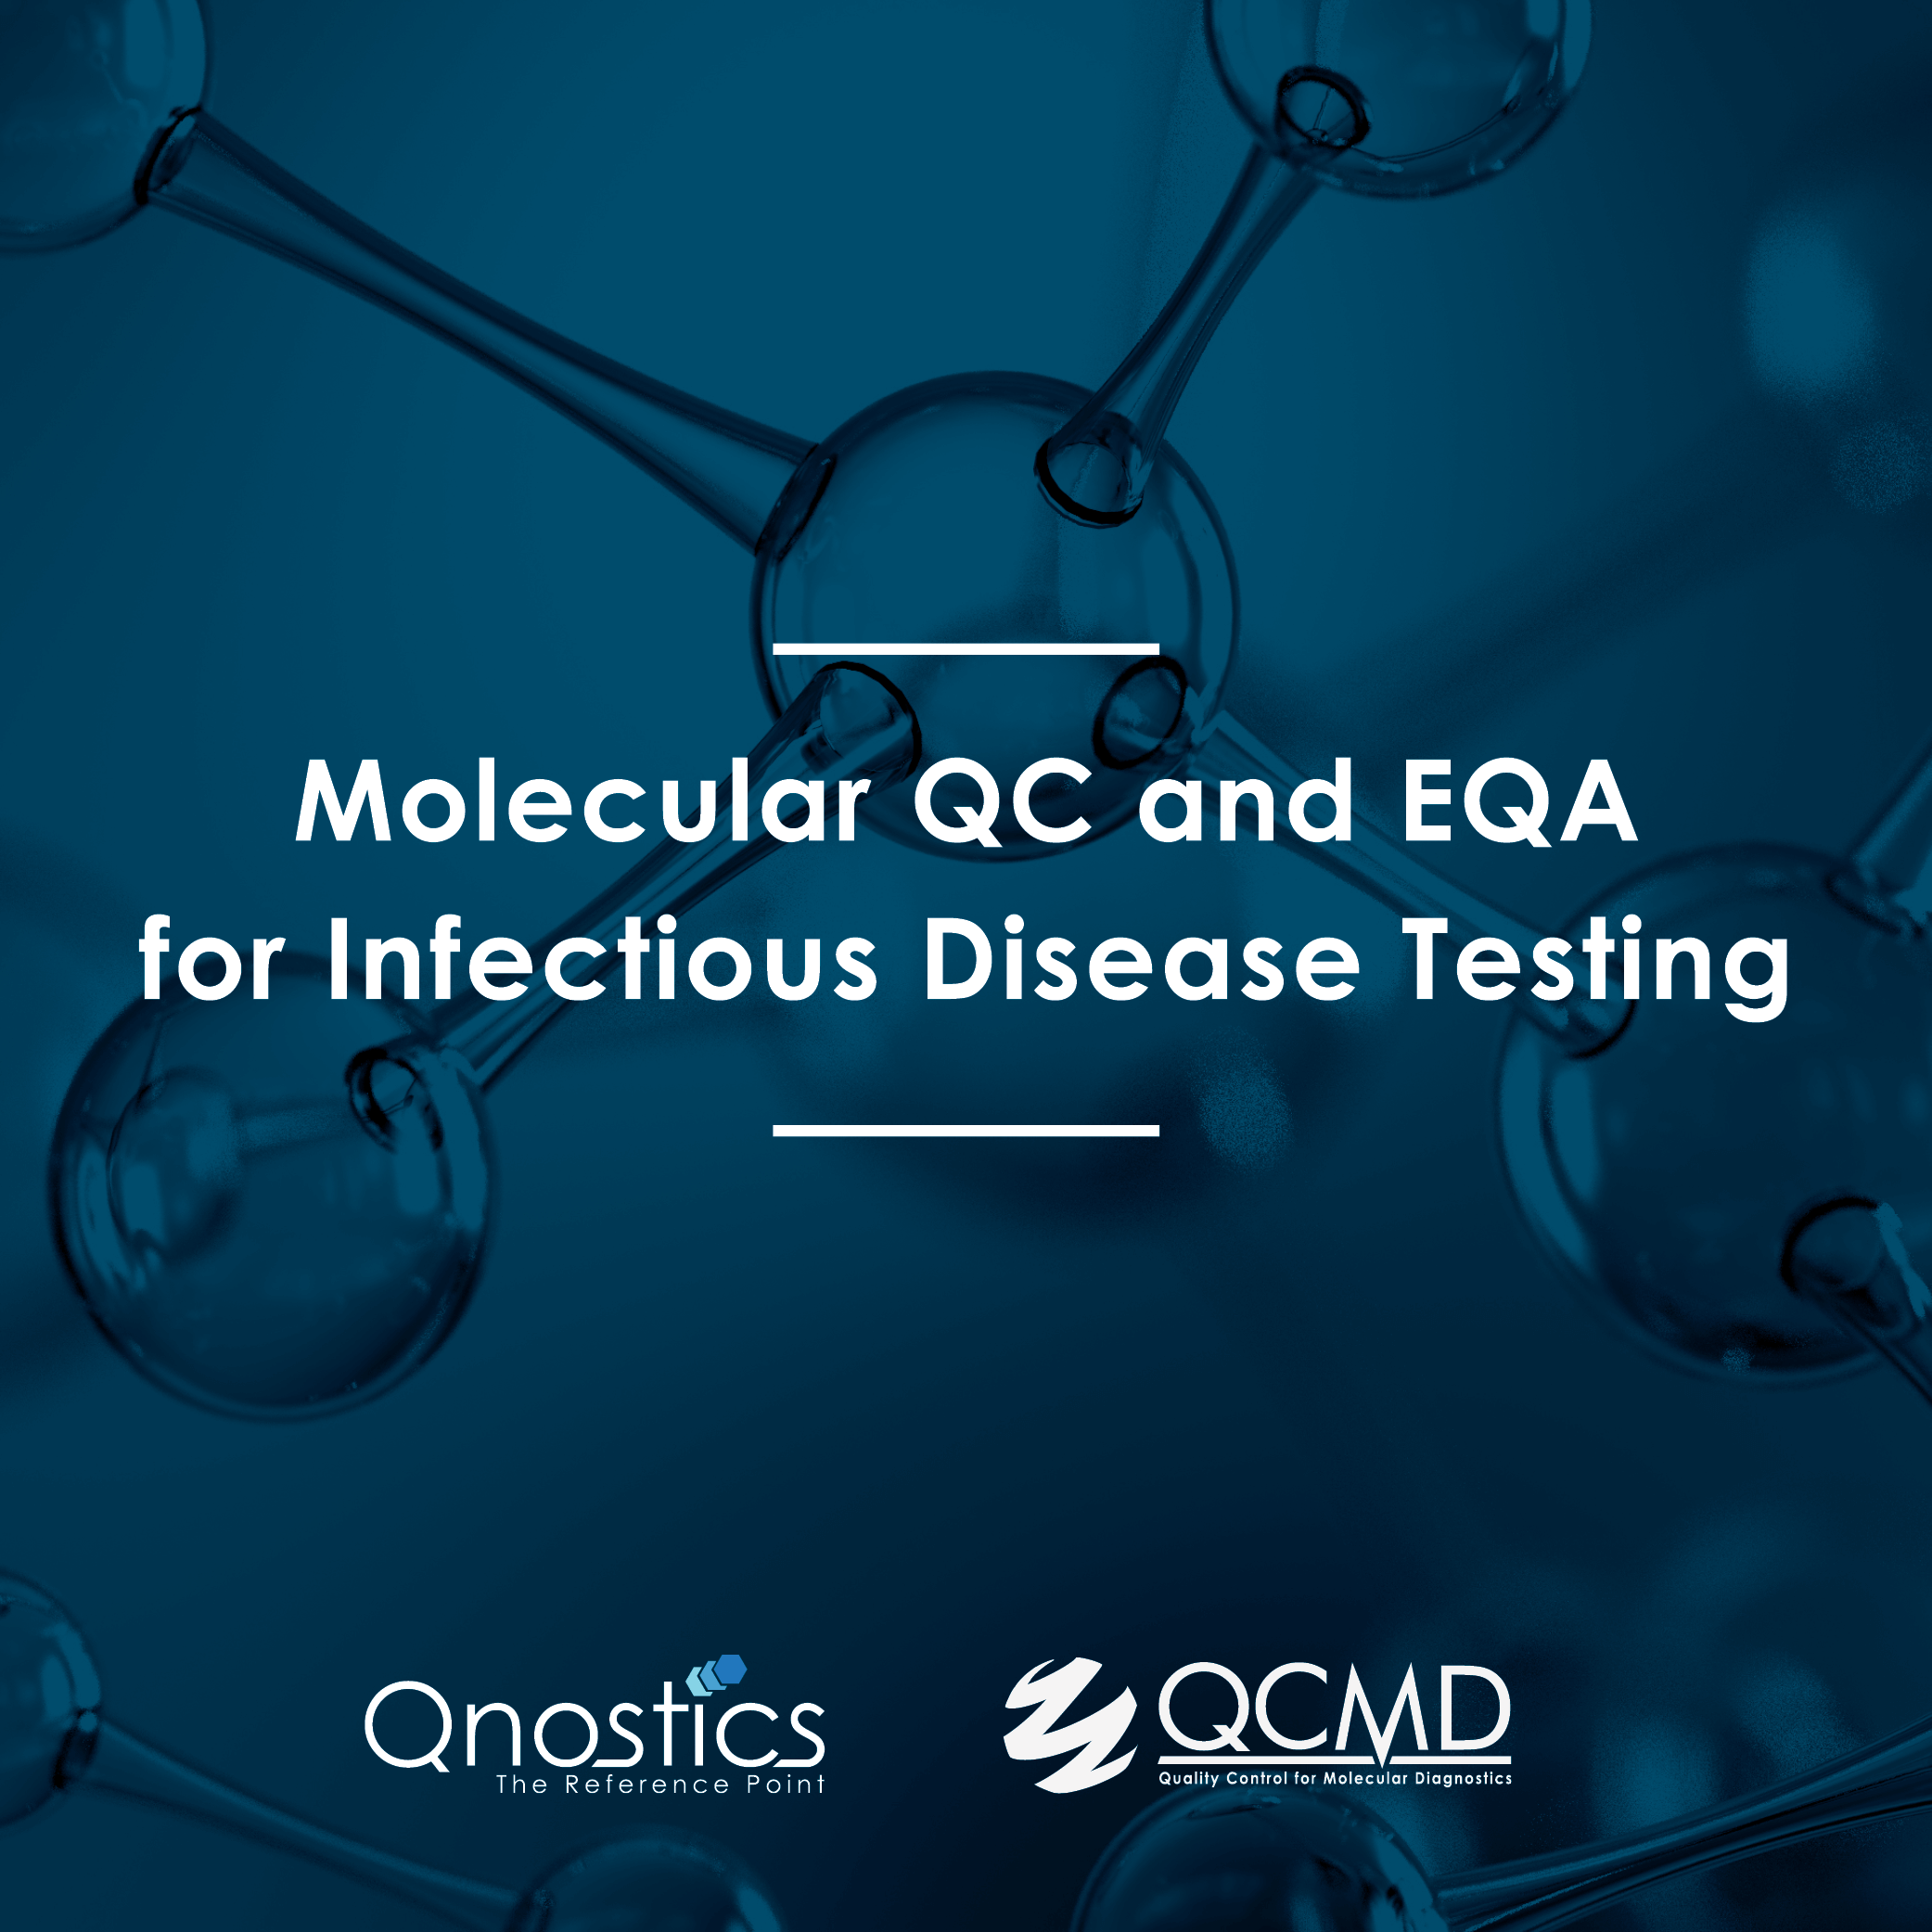 Molecular QC and EQA for Infectious Disease Testing